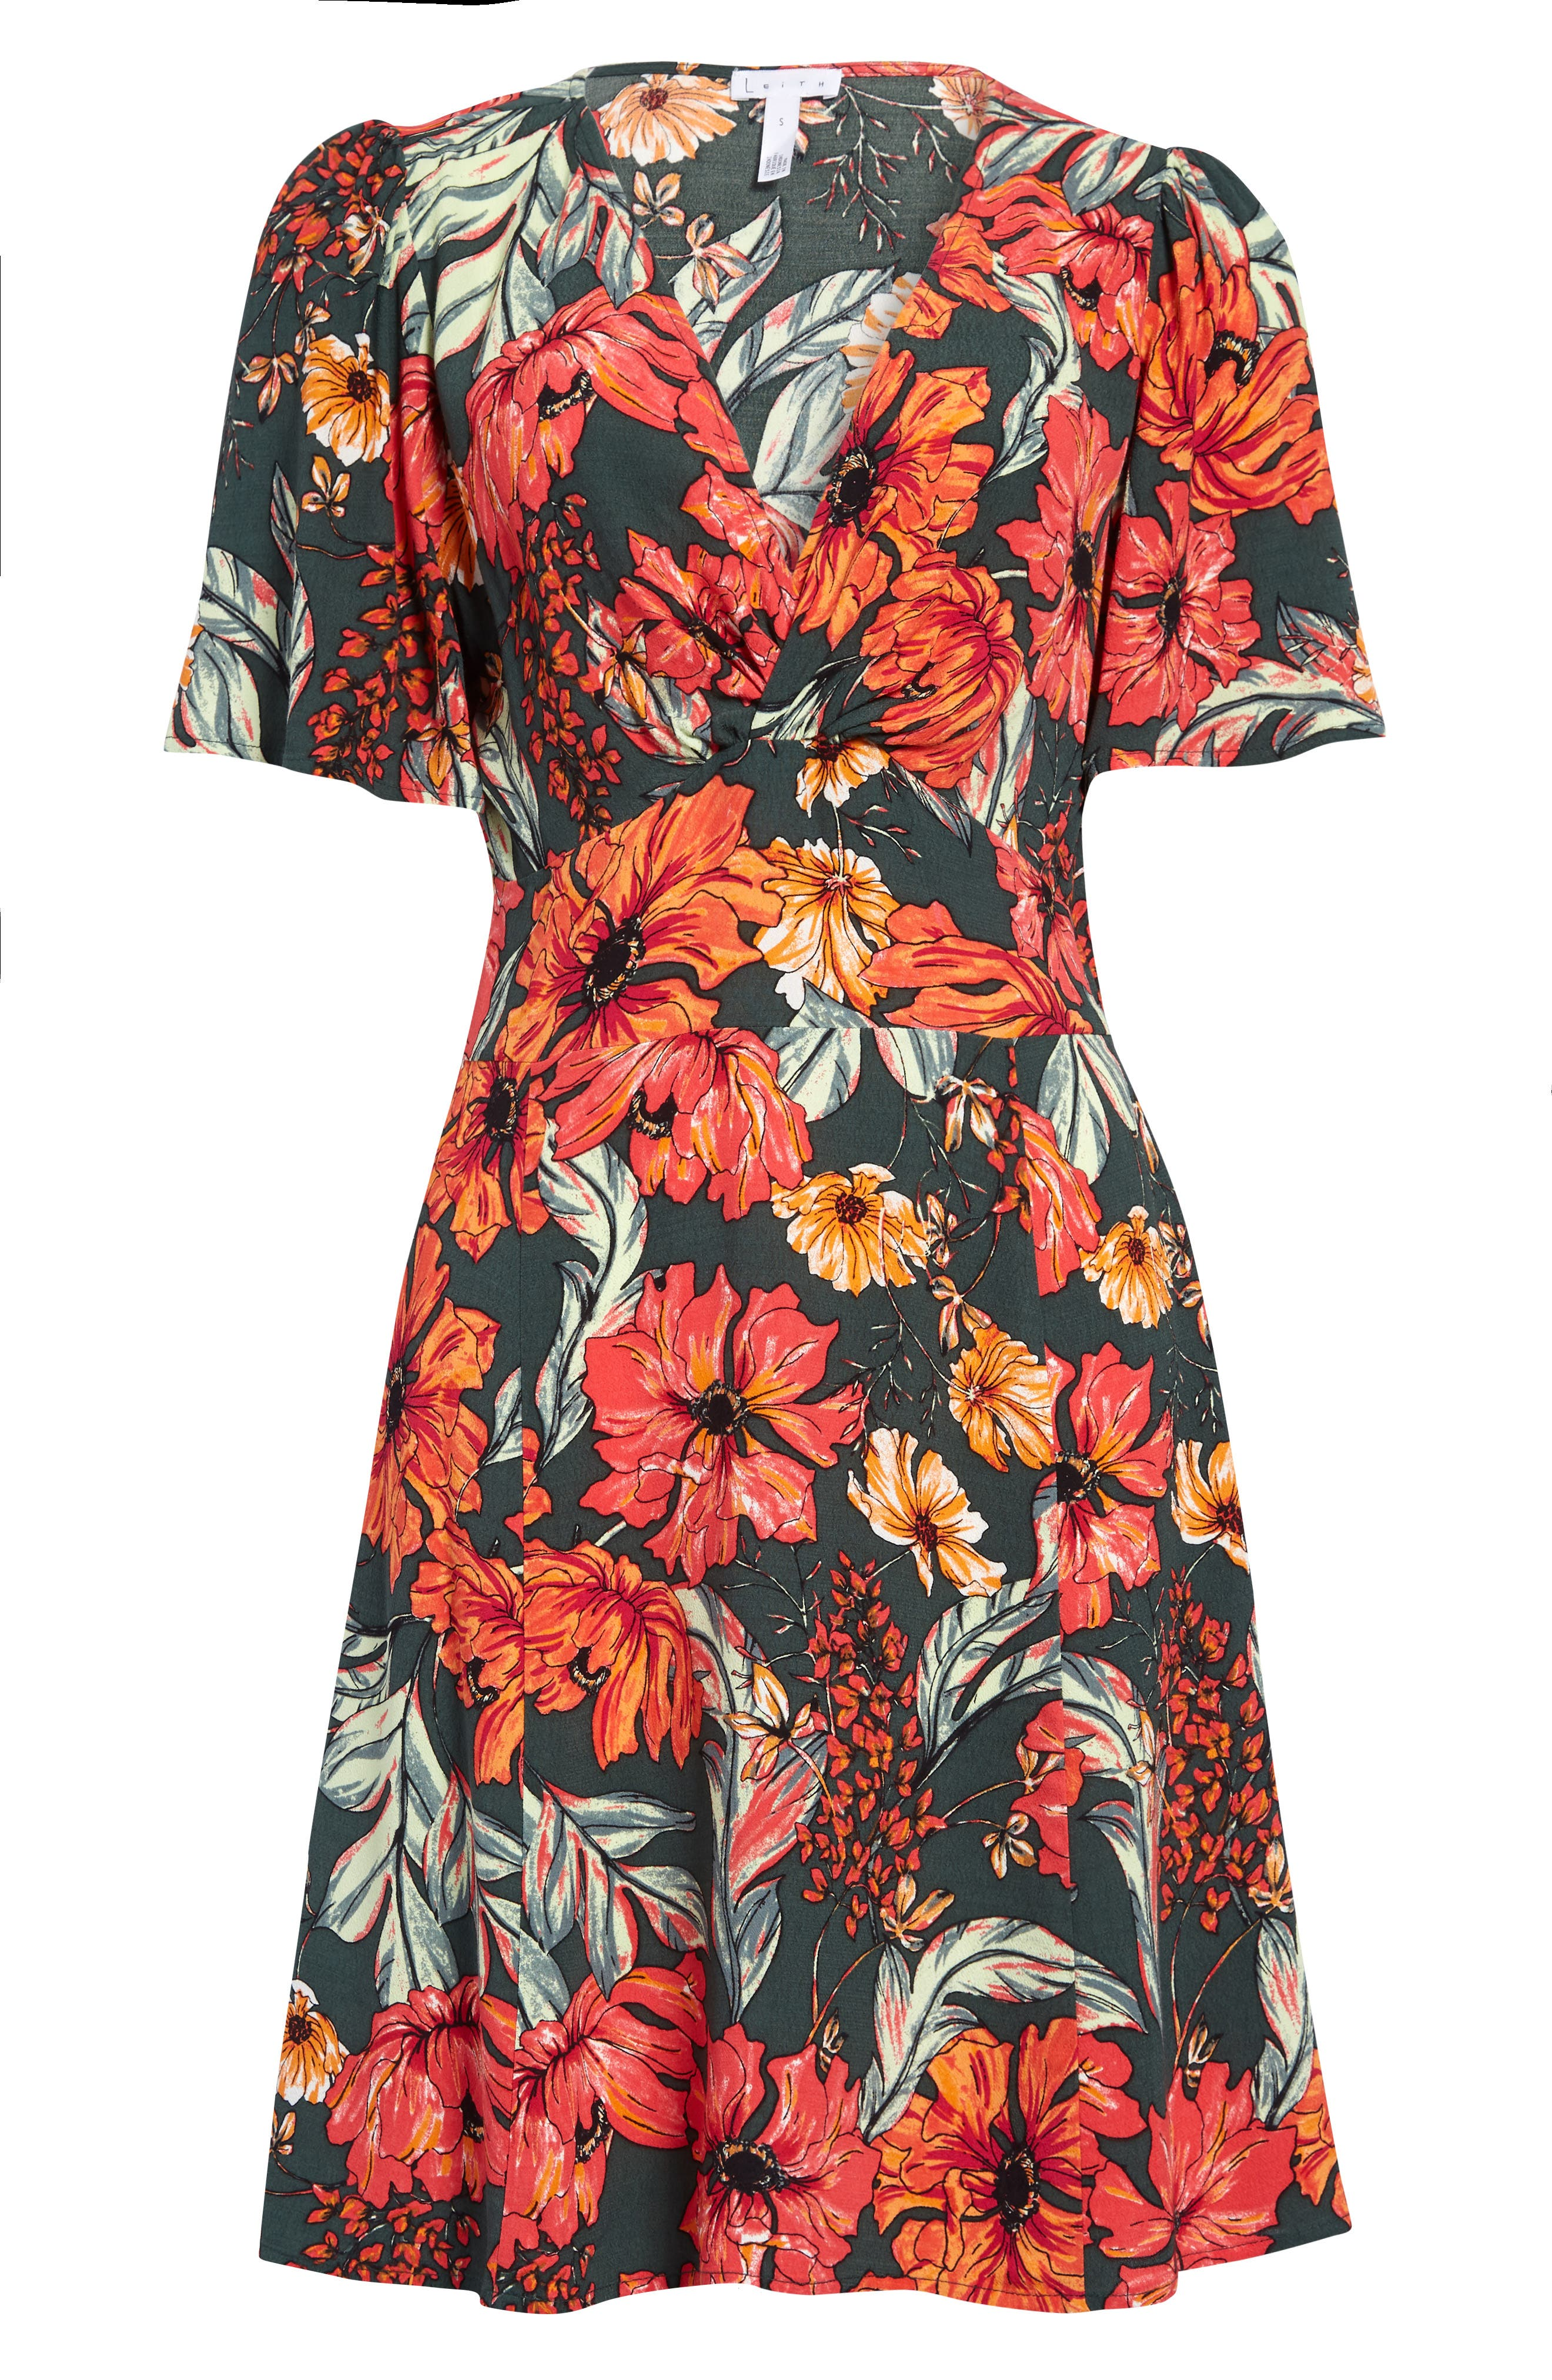 A little twist at the bust enhances the waist-defining silhouette of this pretty printed A-line dress. Style Name: Leith Twist Front A-Line Minidress. Style Number: 6014690. Available in stores.